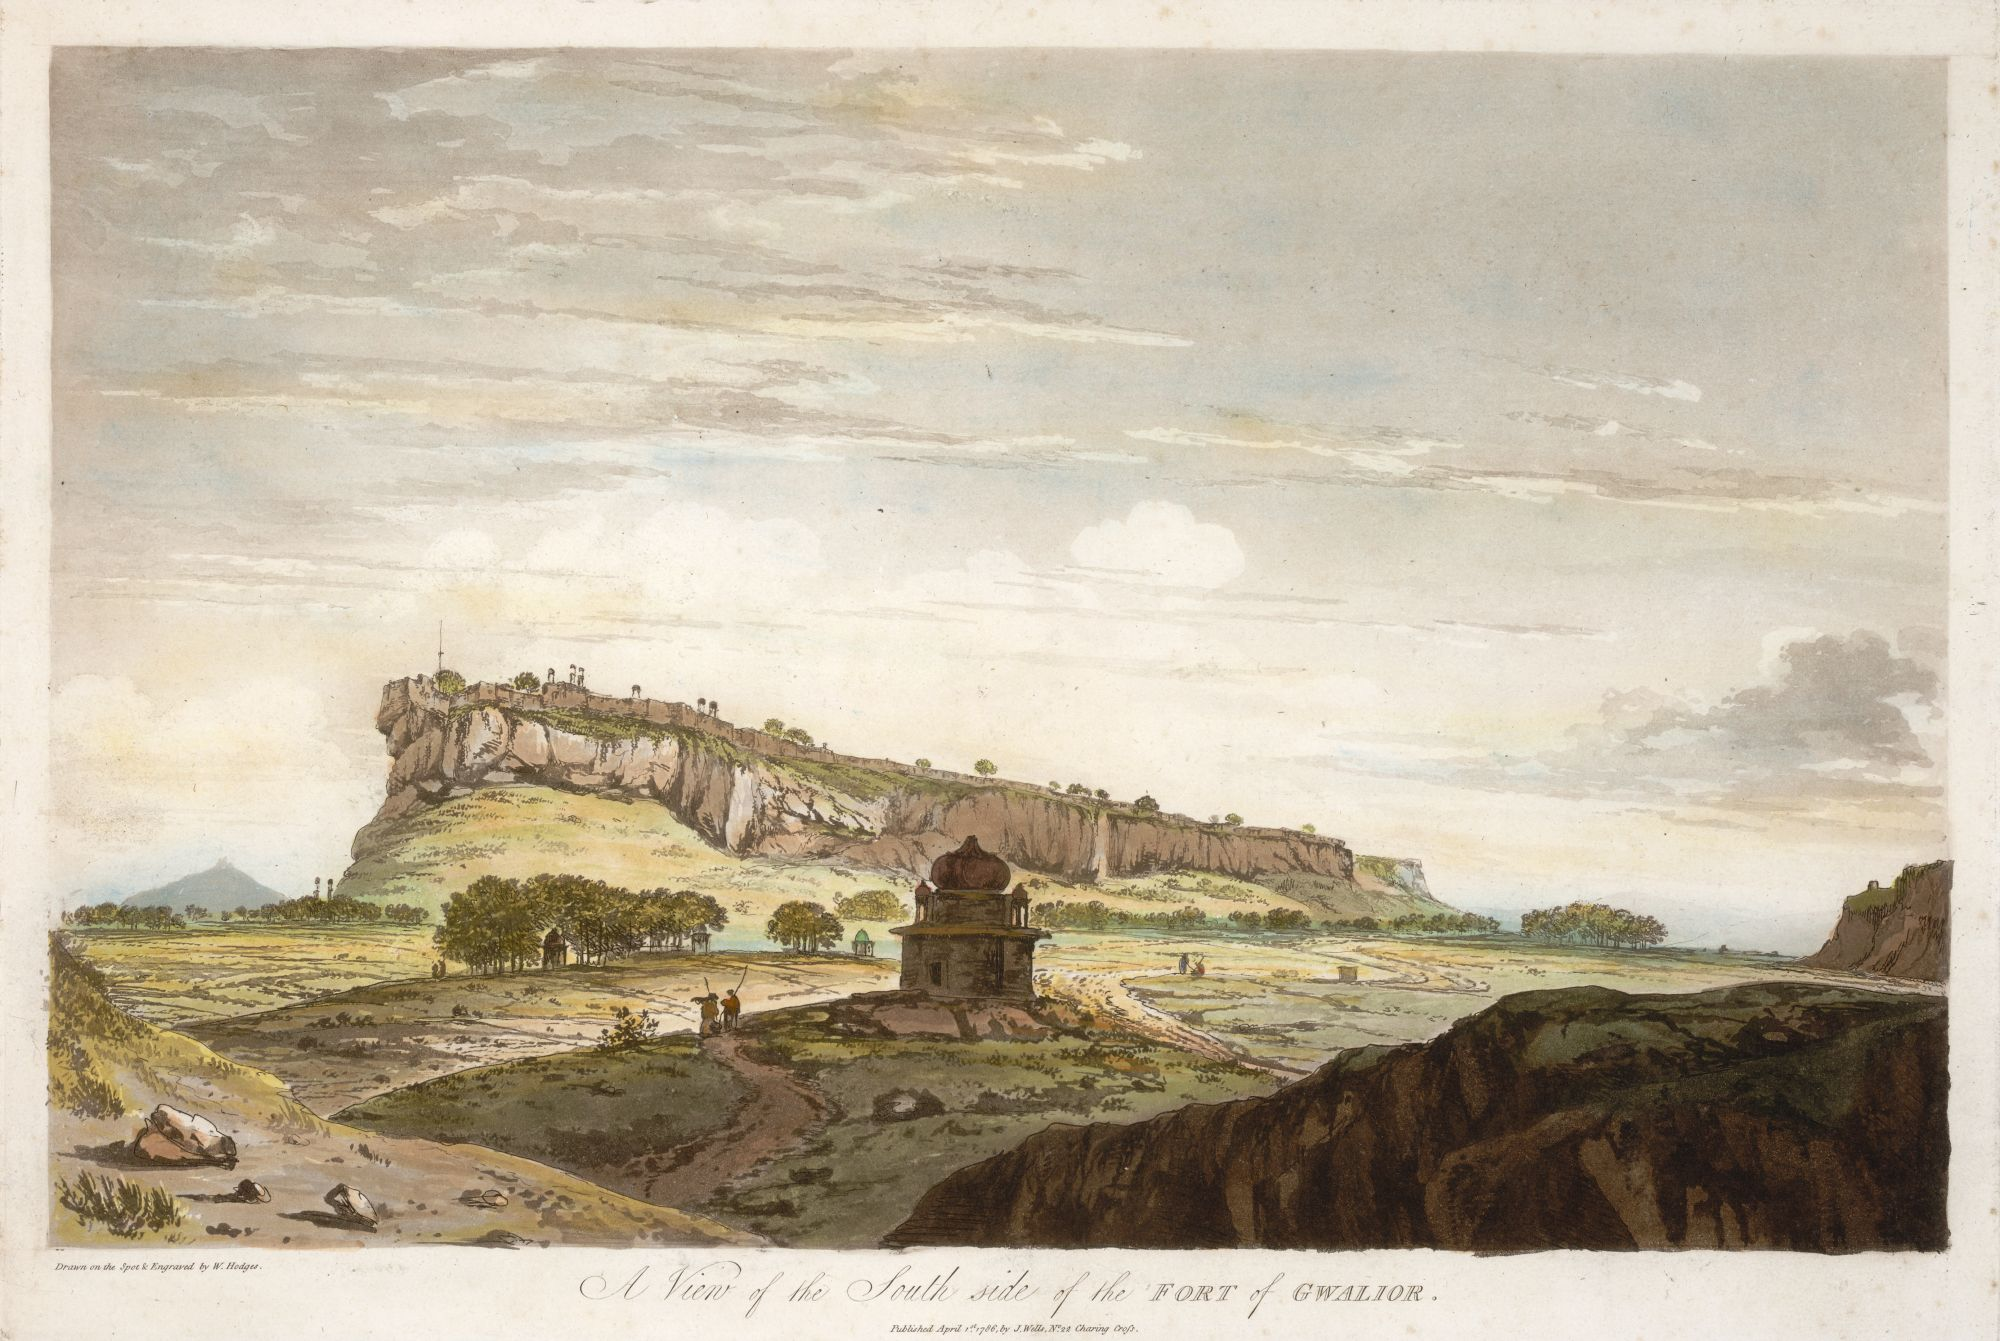 A View of the South Side of the Fort of Gwalior